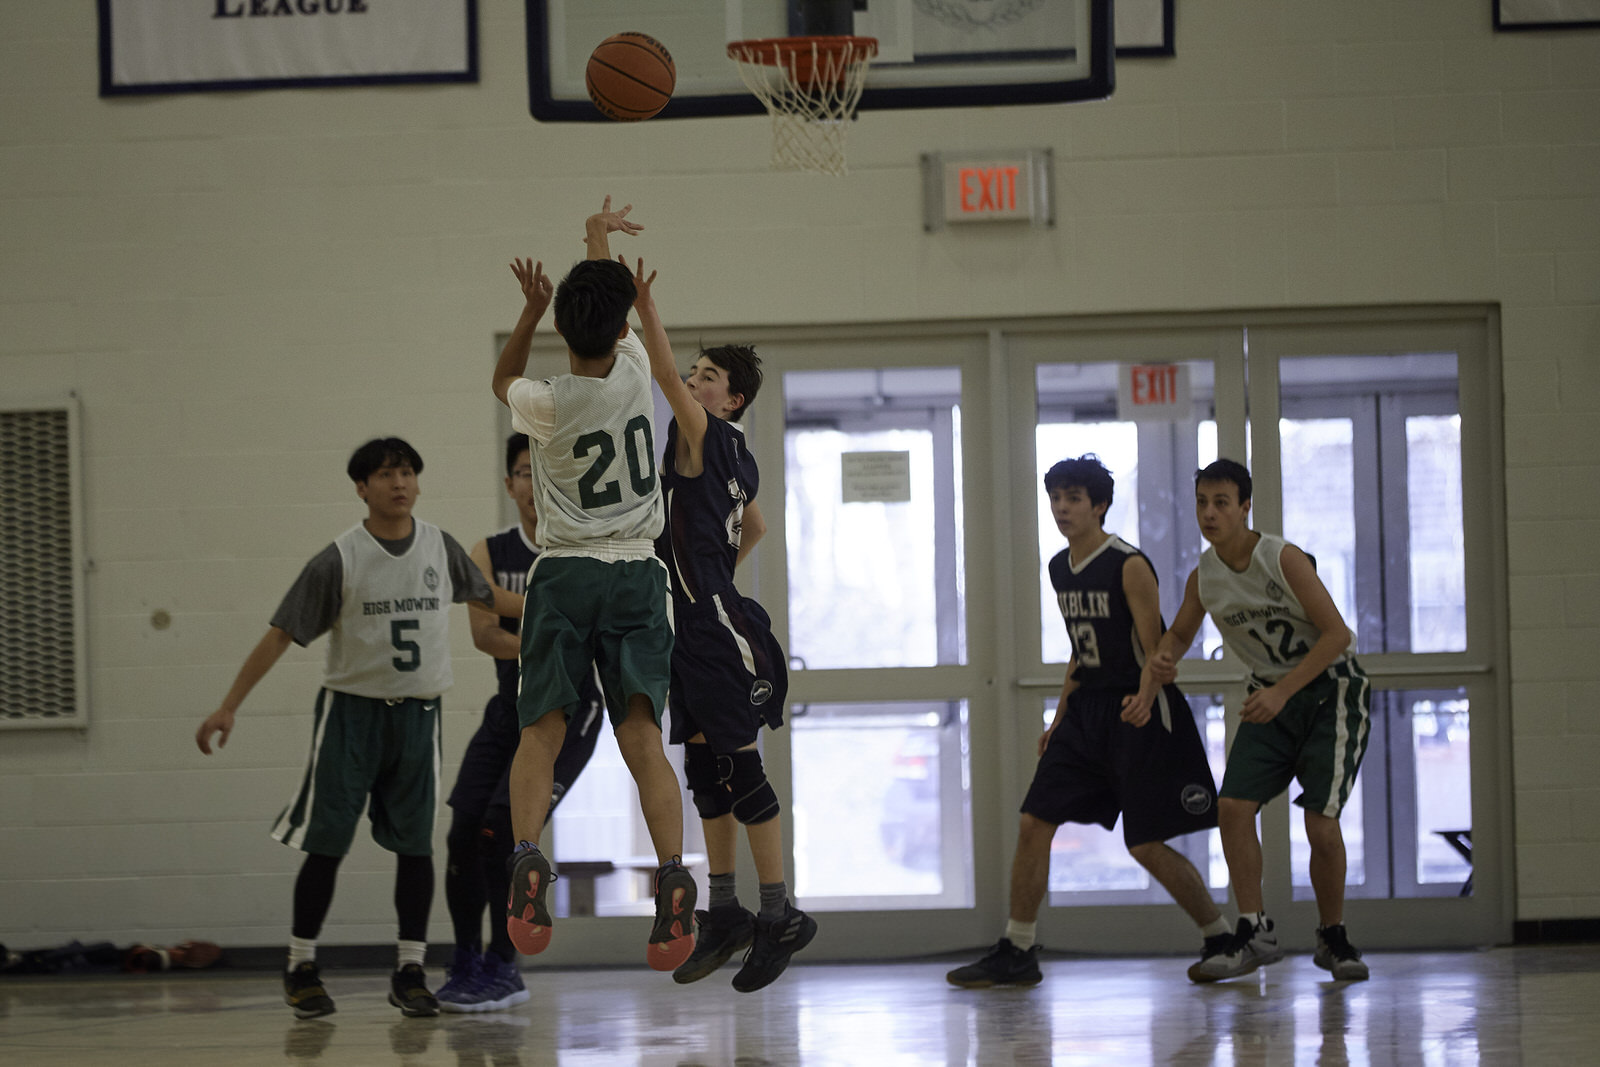 Dublin JV Boys Basketball vs High Mowing School - Jan 26 2019 - 0169.jpg